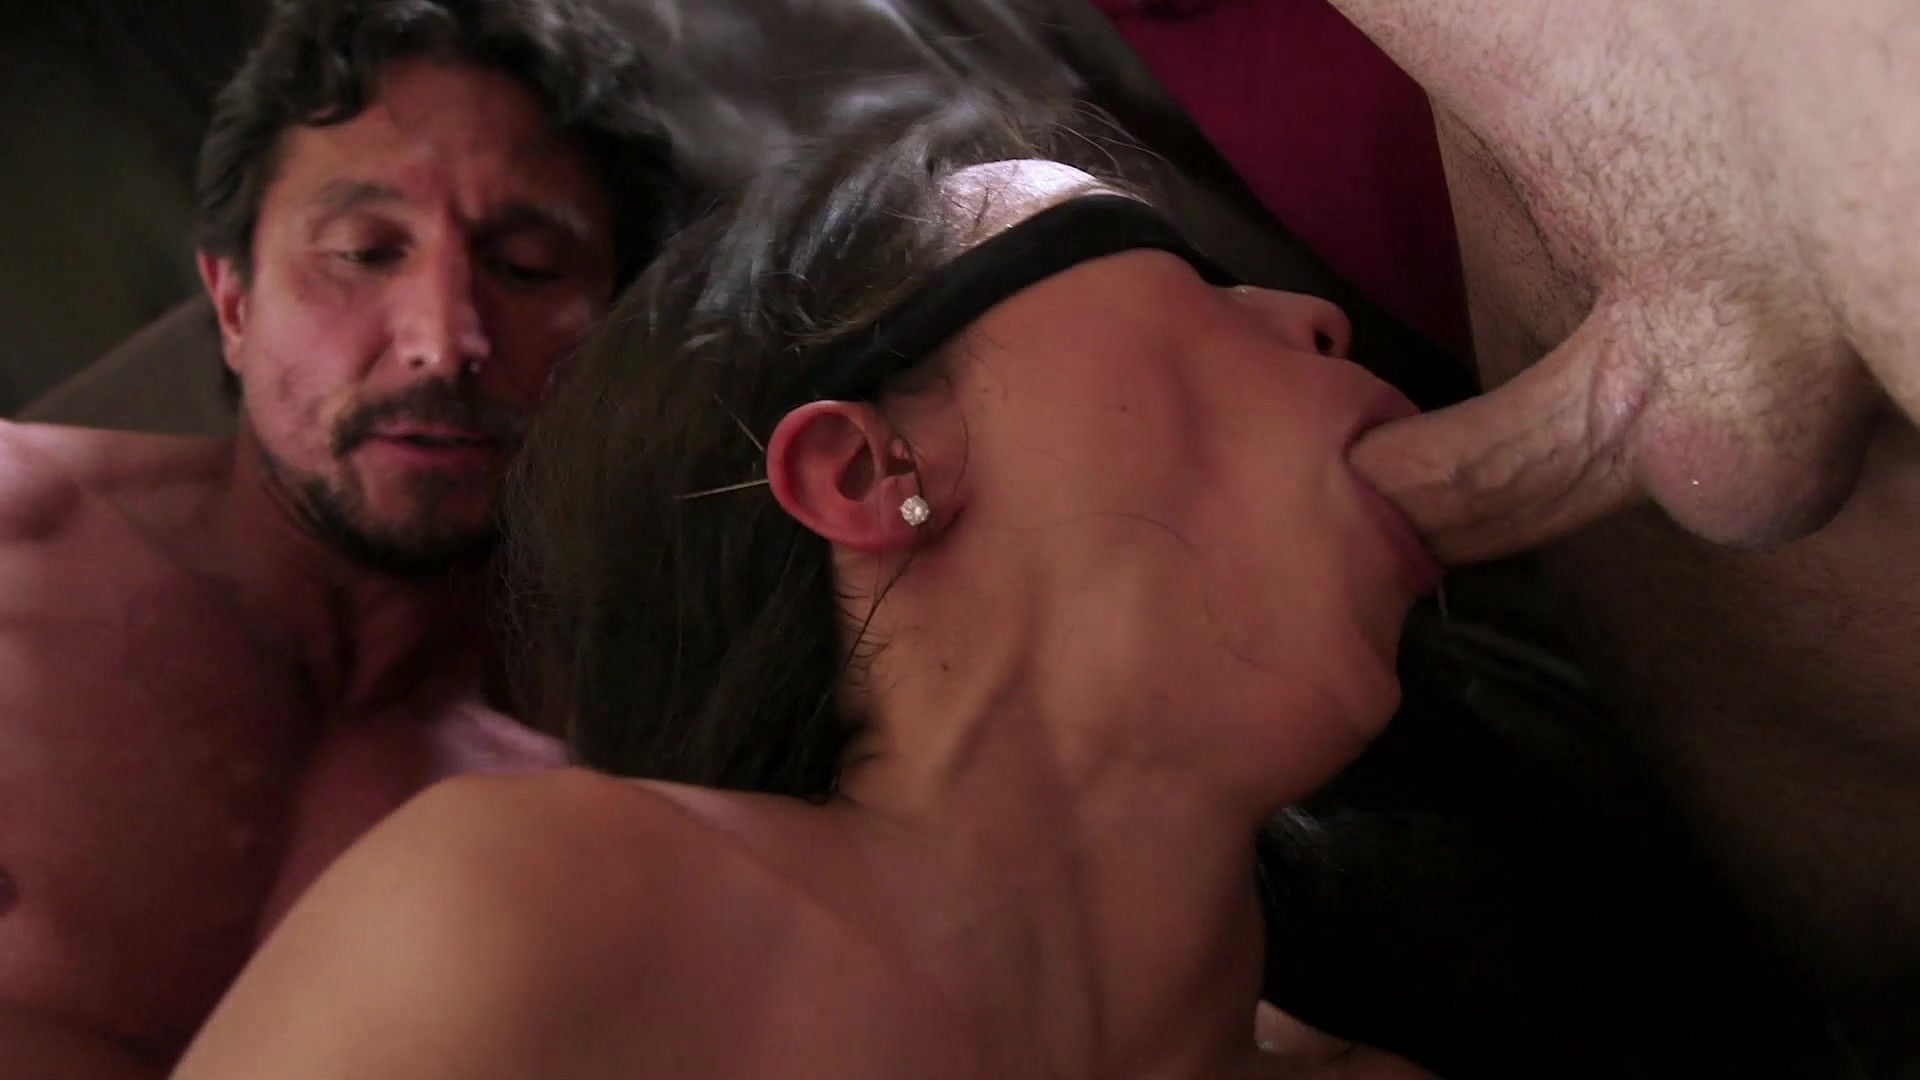 Scene with Tommy Gunn, John Strong and Kalina Ryu - image 20 out of 20